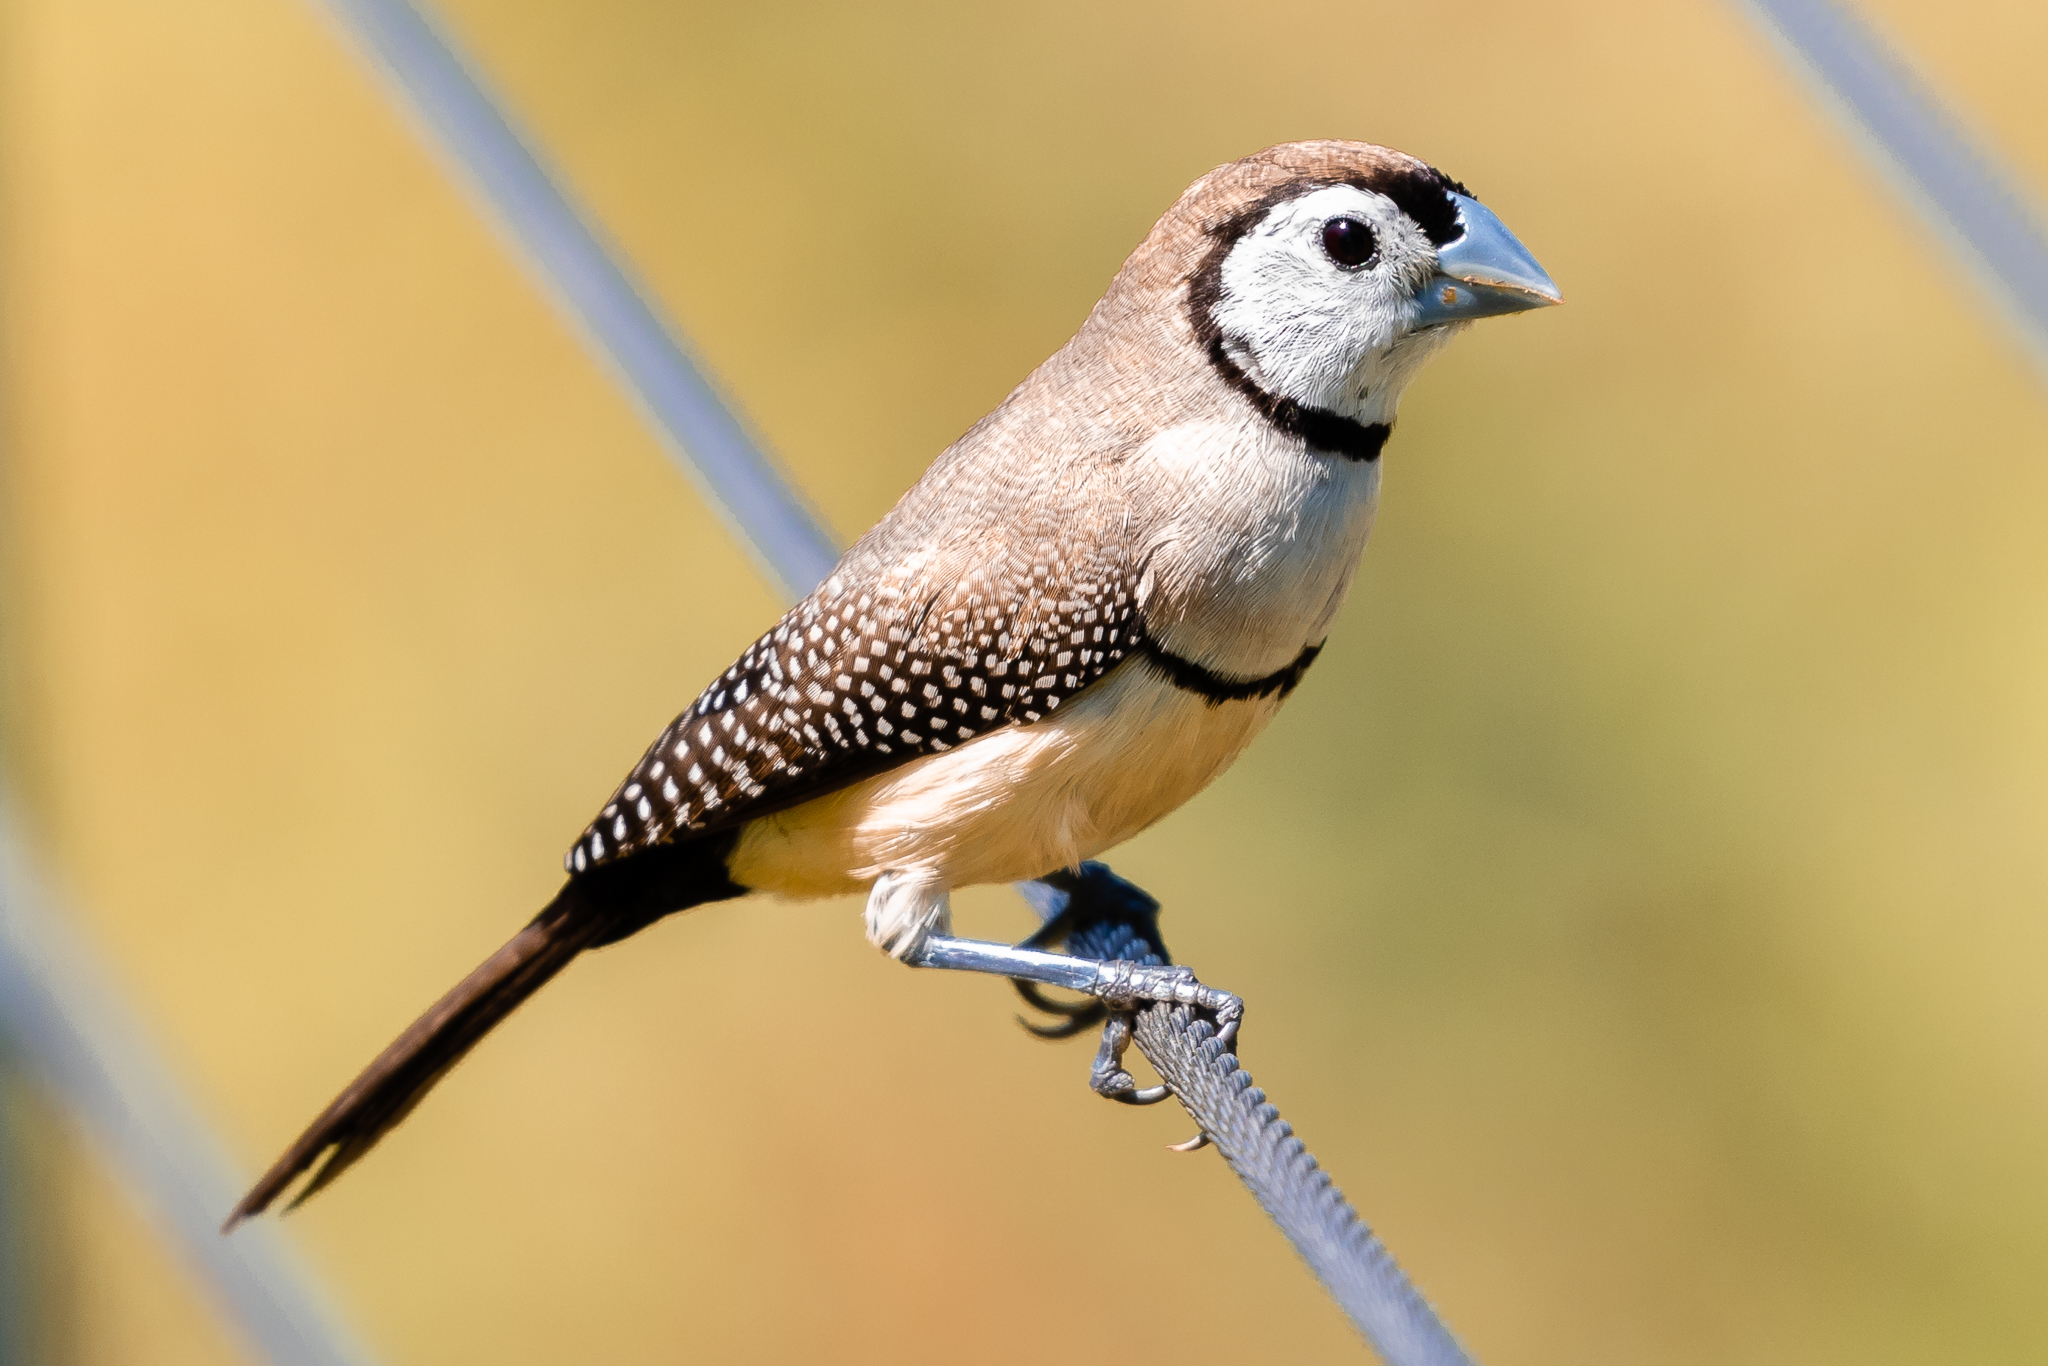 The Double-barred Finch (11 cm) is found across northern and eastern Australia in grassy woodlands and forests. This bird with its white rump is from the northern race, the eastern race have a black rump. Double-barred Finches eat seeds and some insects.